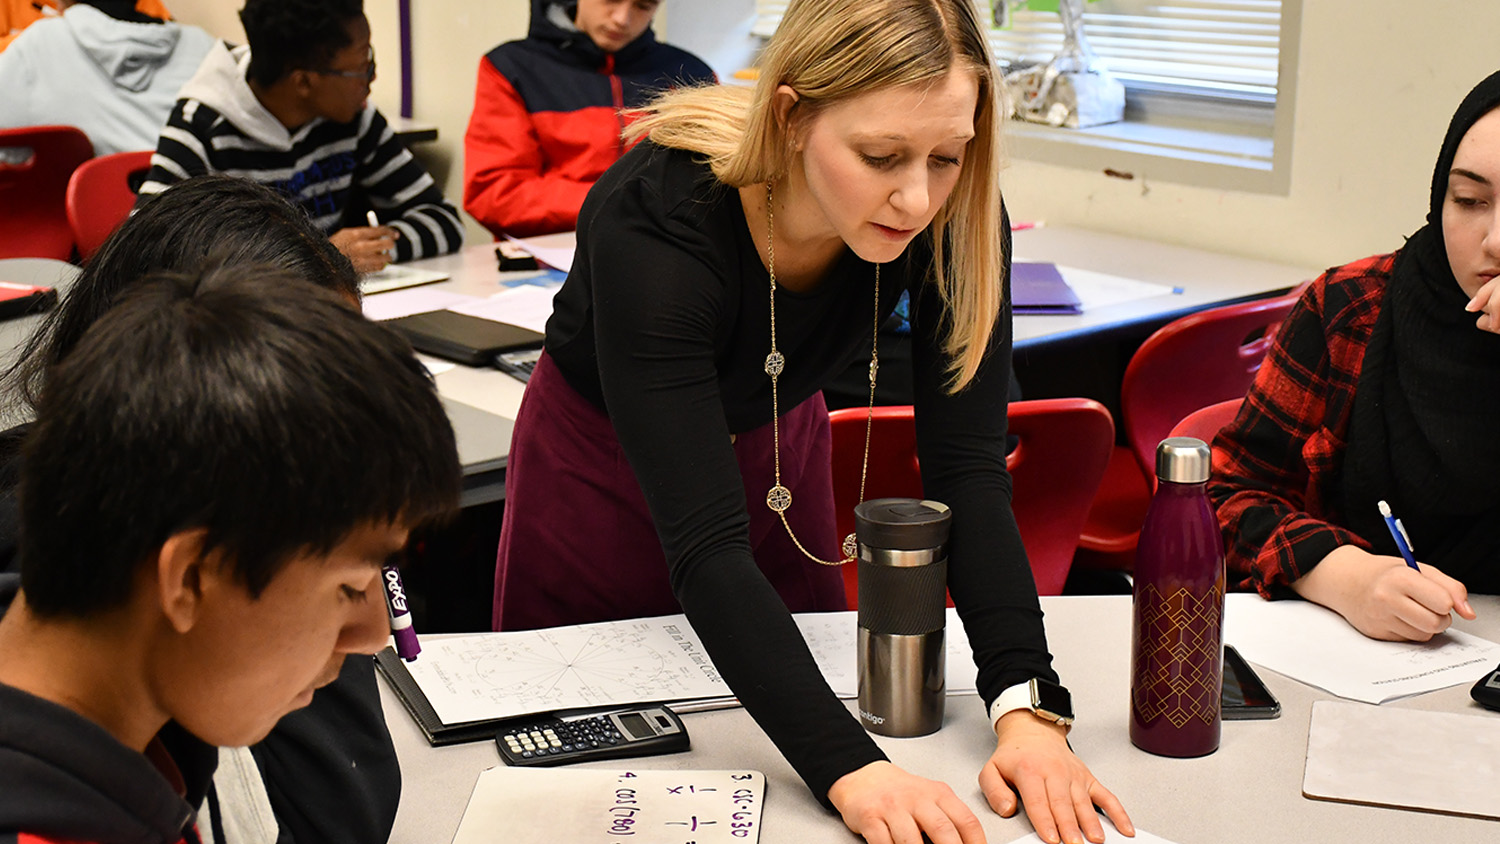 Hailey Mesmer student teaching at Wake STEM Early College High School